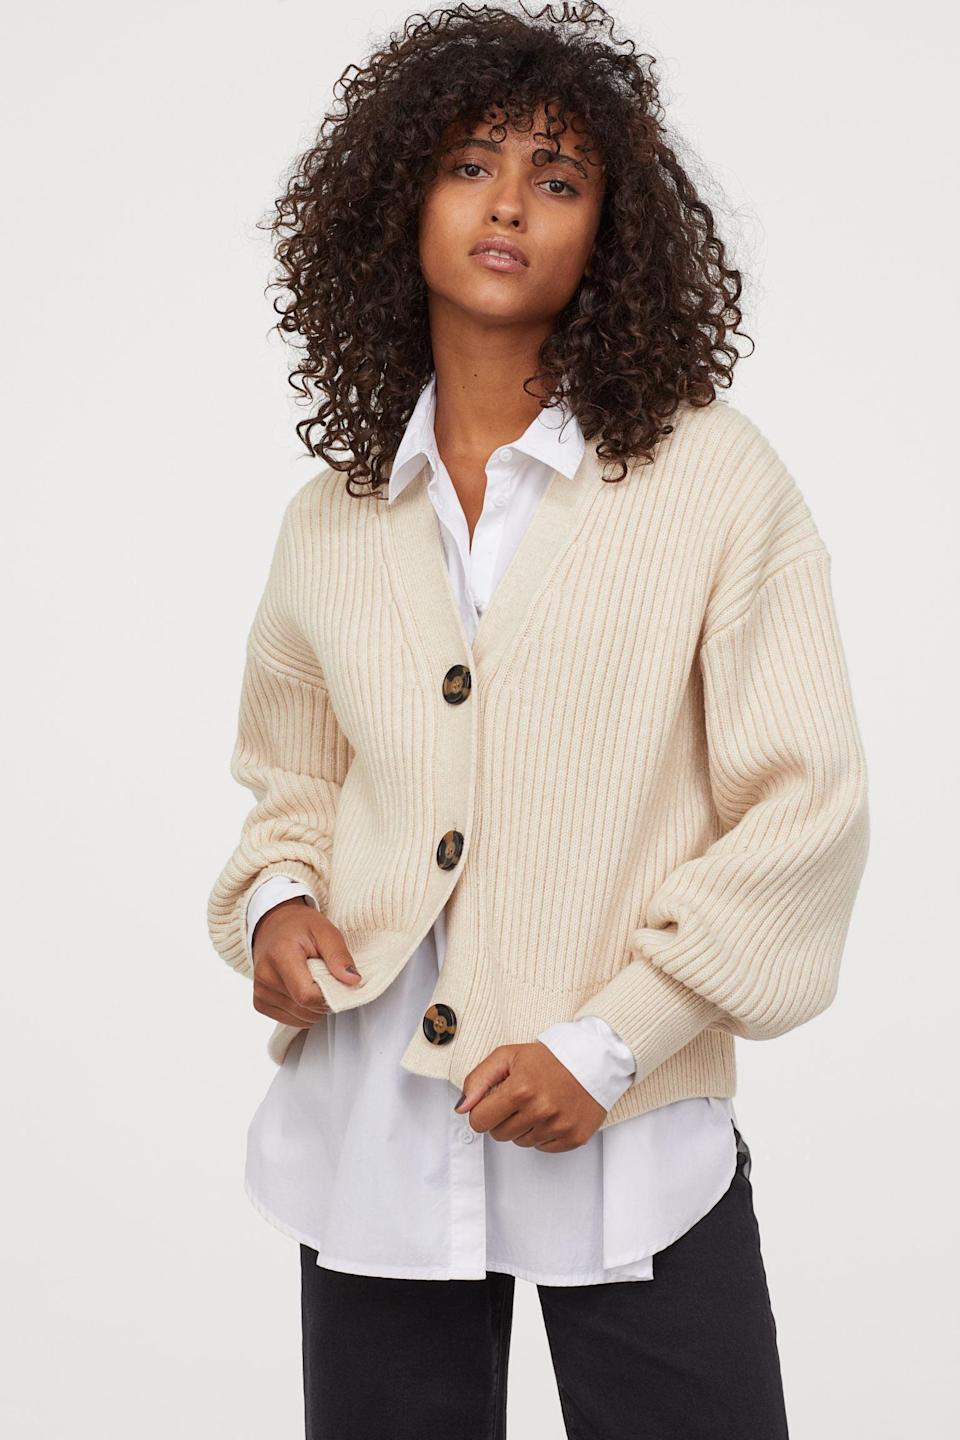 <p>This <span>Rib-knit Cardigan</span> ($35) will look great over a button-down shirt or on its own as a sweater top.</p>